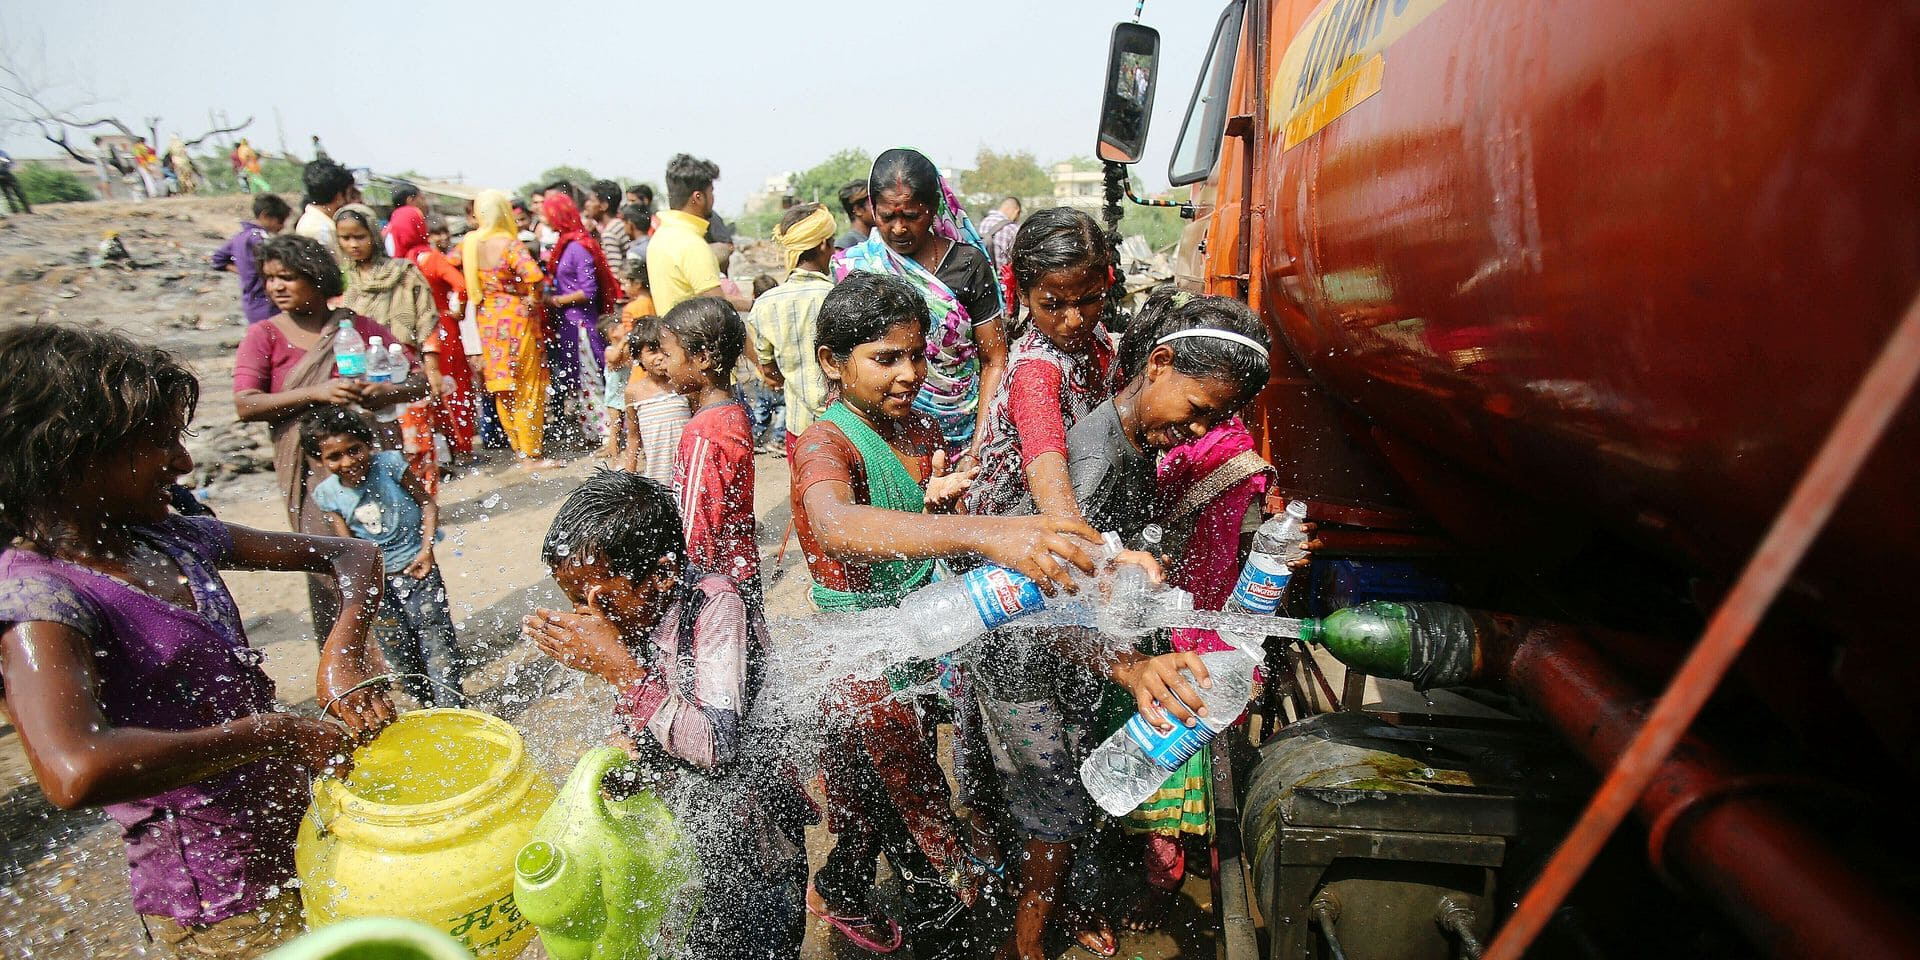 People fill containers with water from a mobile tanker at a slum area on the outskirts of Jammu, India, Monday, June 3, 2019. Many parts of India are experiencing heat wave conditions with temperature hovering above 45 degree celsius (113 fahrenheit). (AP Photo/Channi Anand)